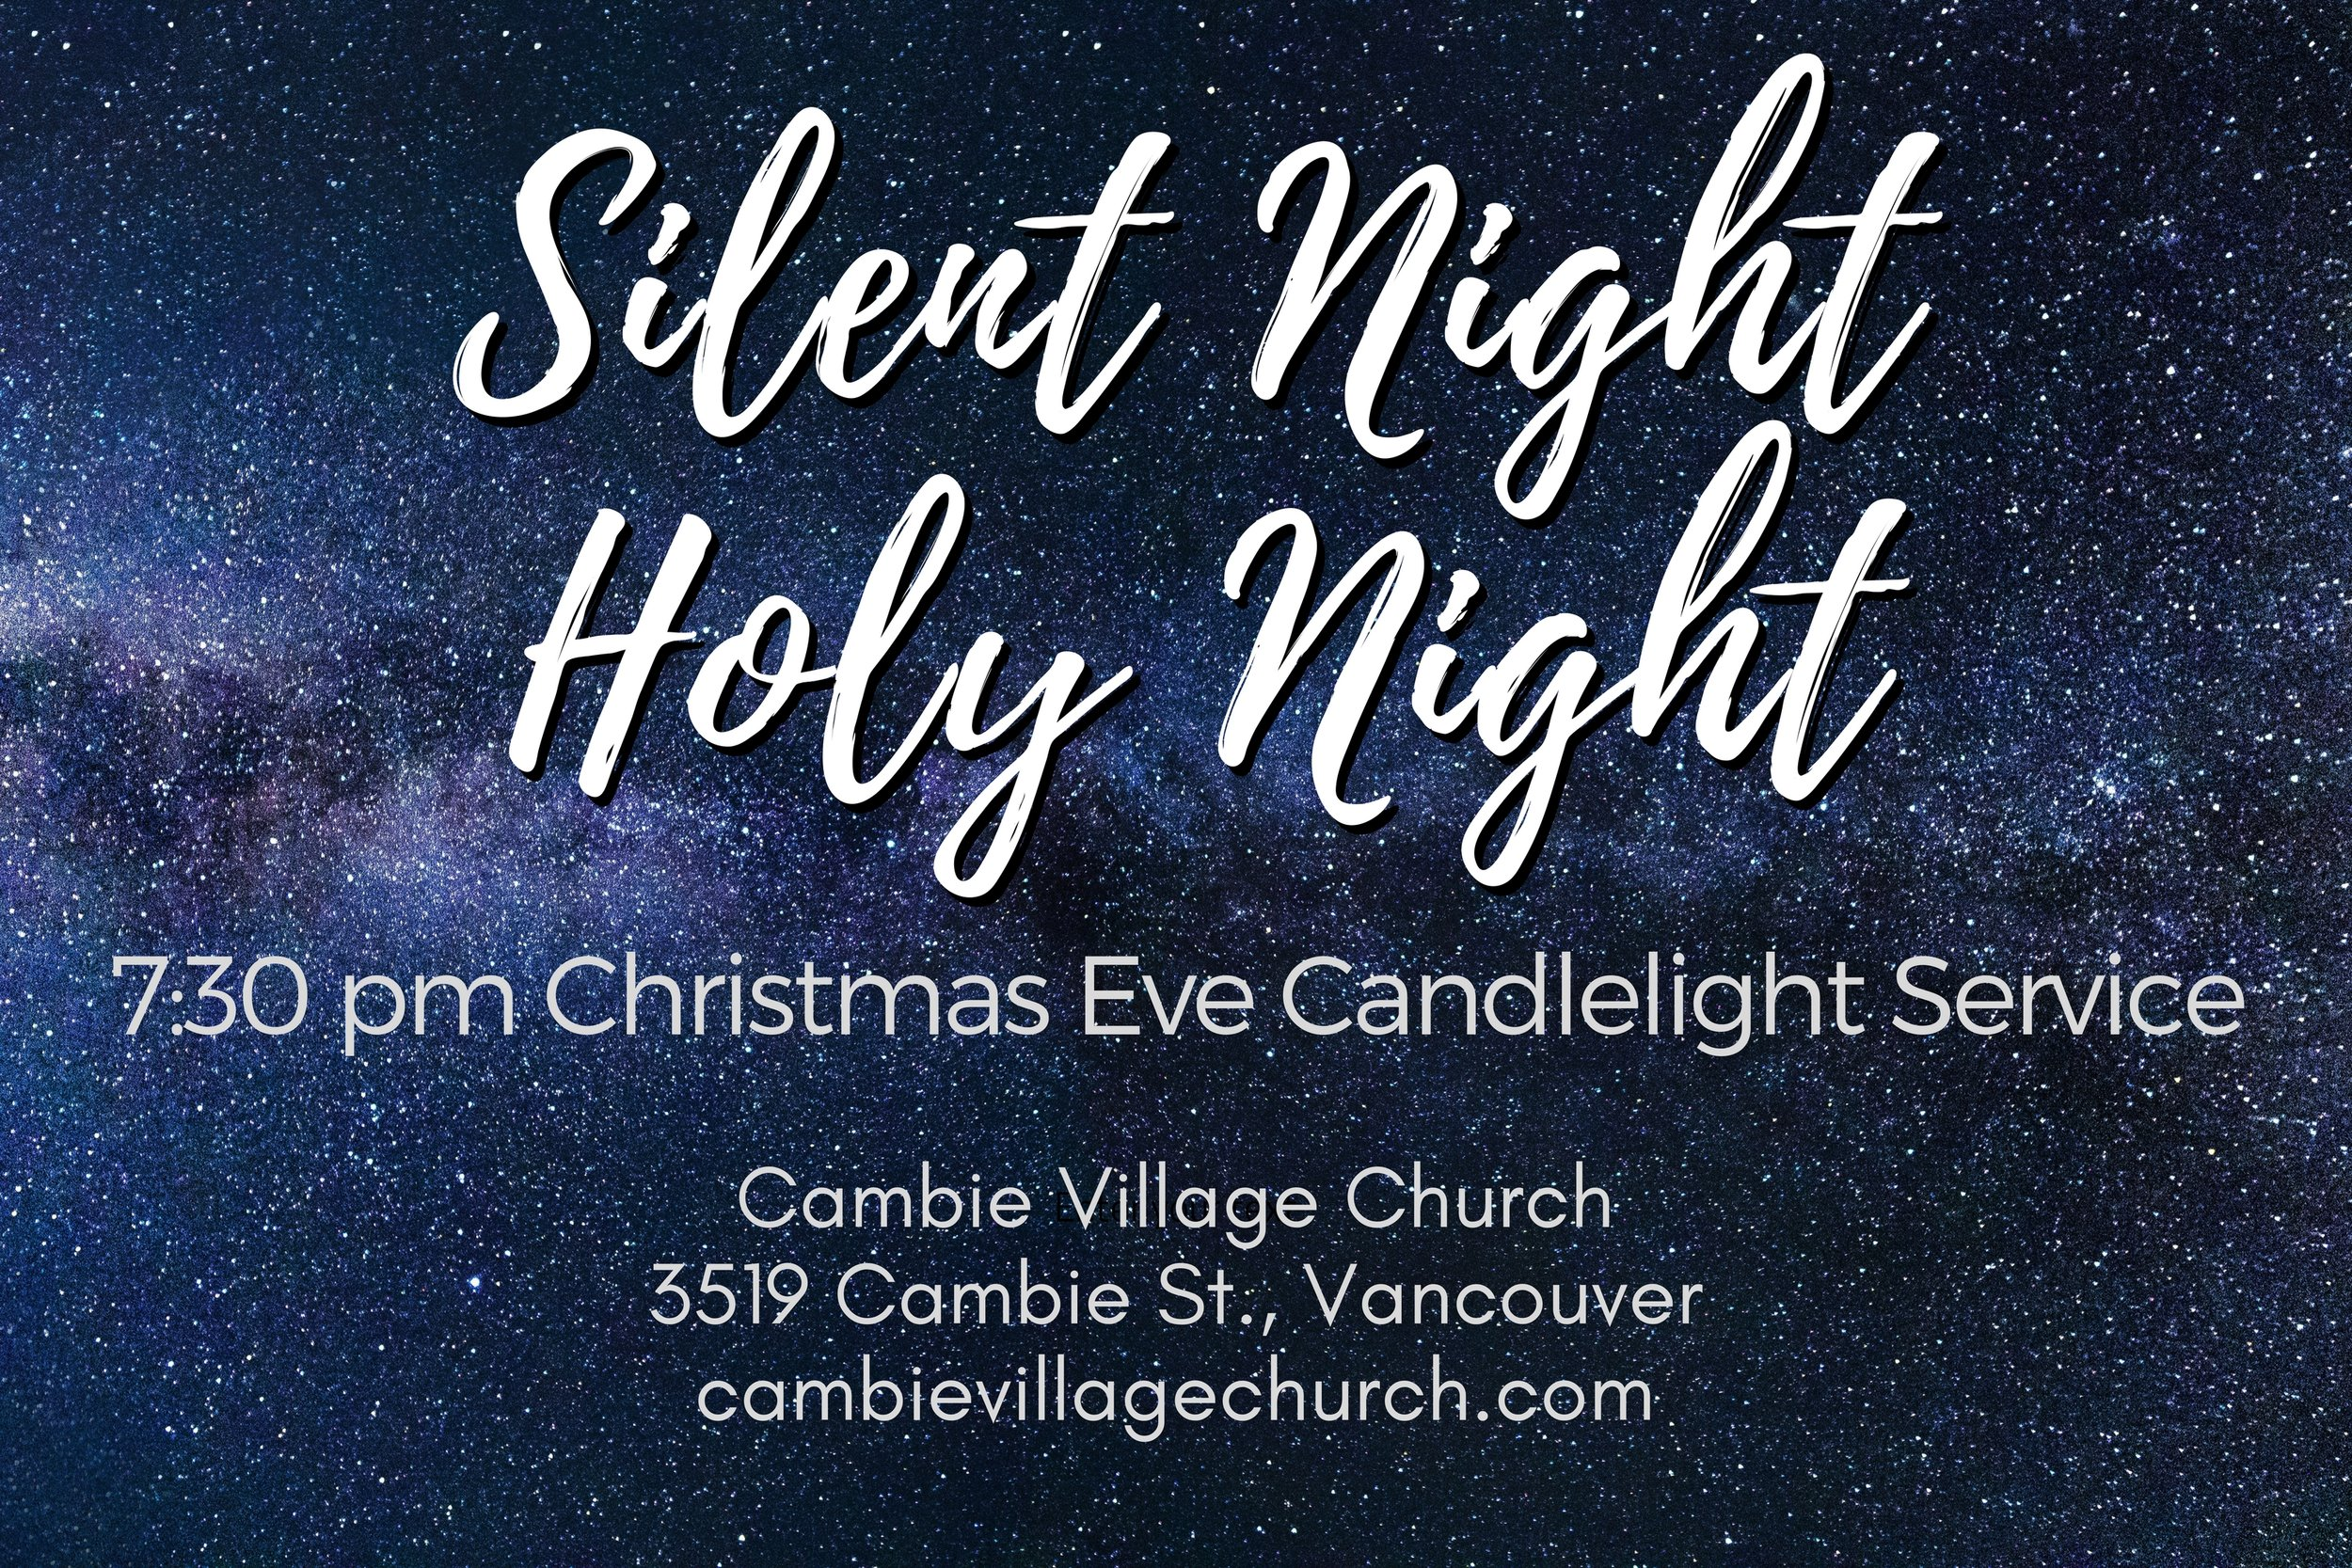 Christmas Eve Candlelight Service - An evening of carols, readings and candlelight7:30pm | 3519 Cambie Street, Vancouver